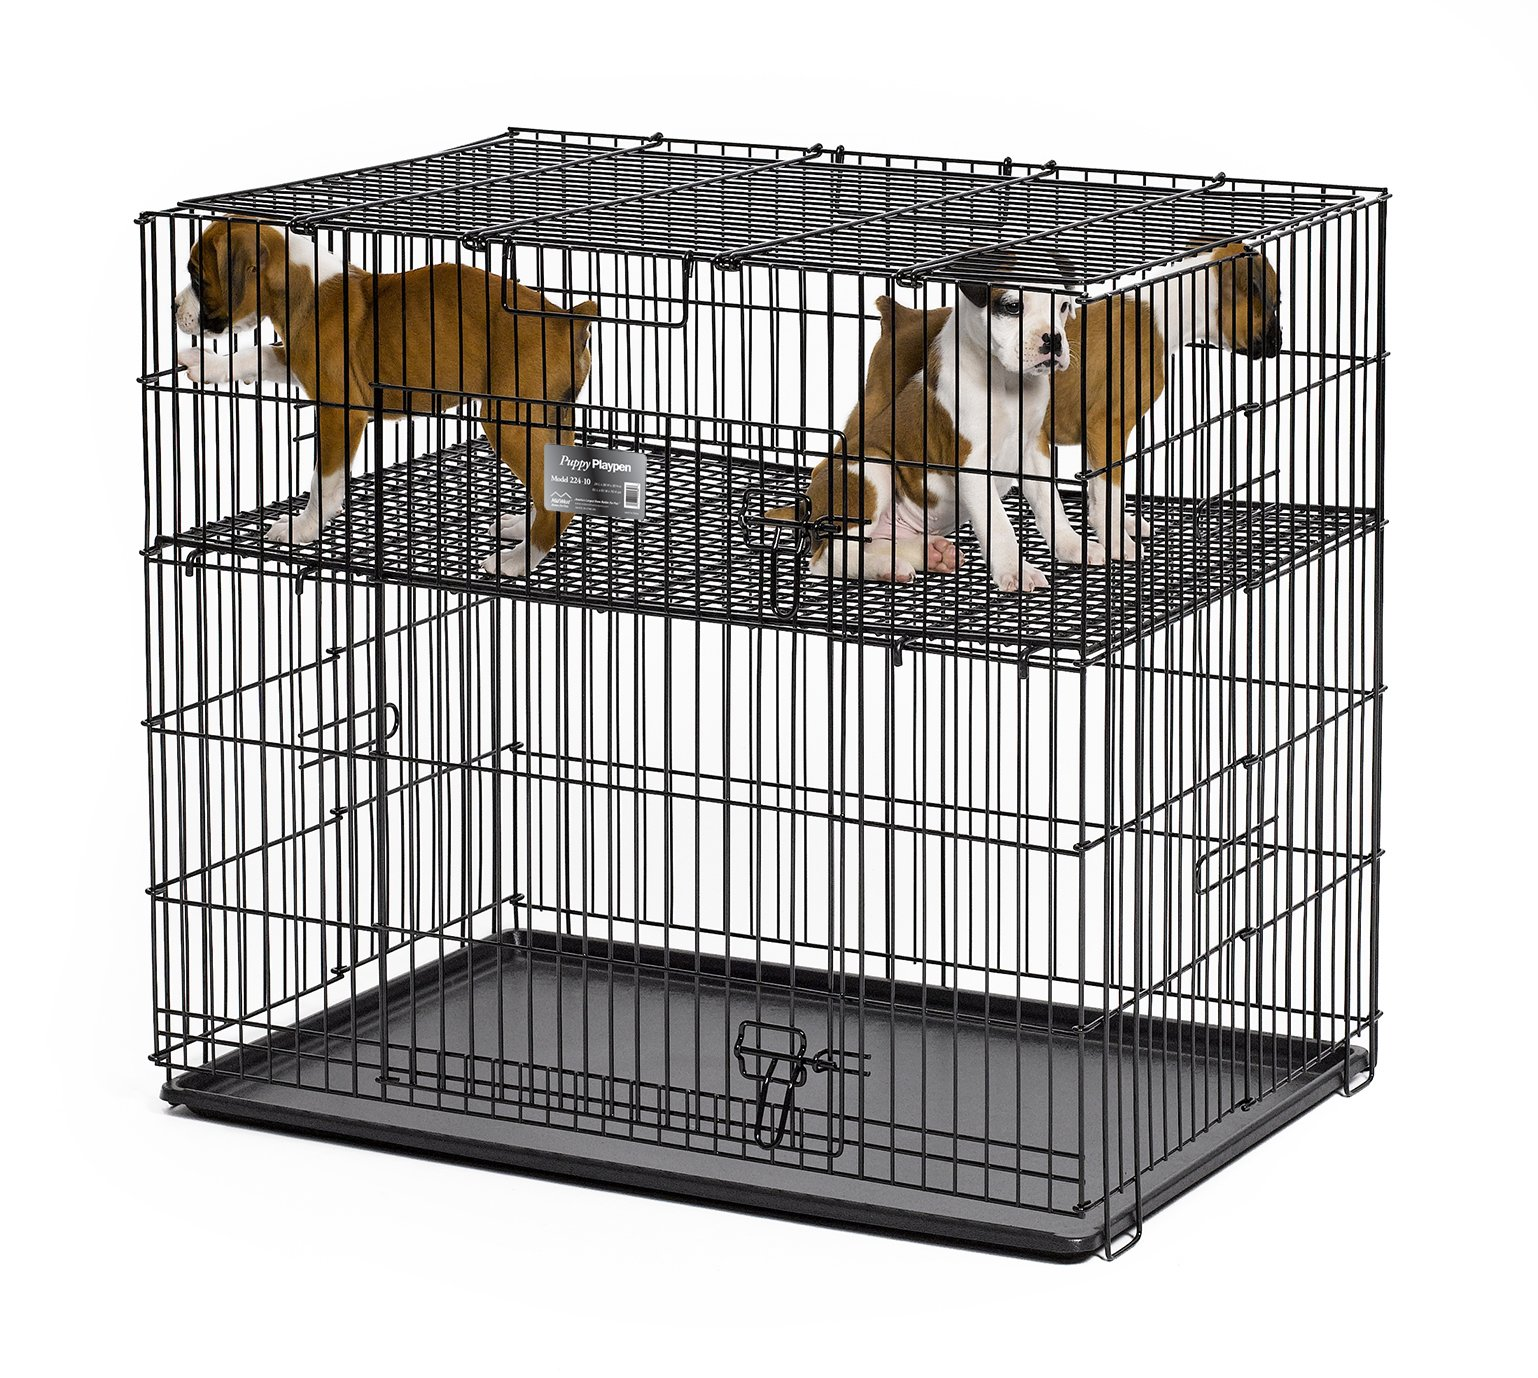 Midwest Homes Puppy Playpen Crate - 224-05 Grid & Pan Included